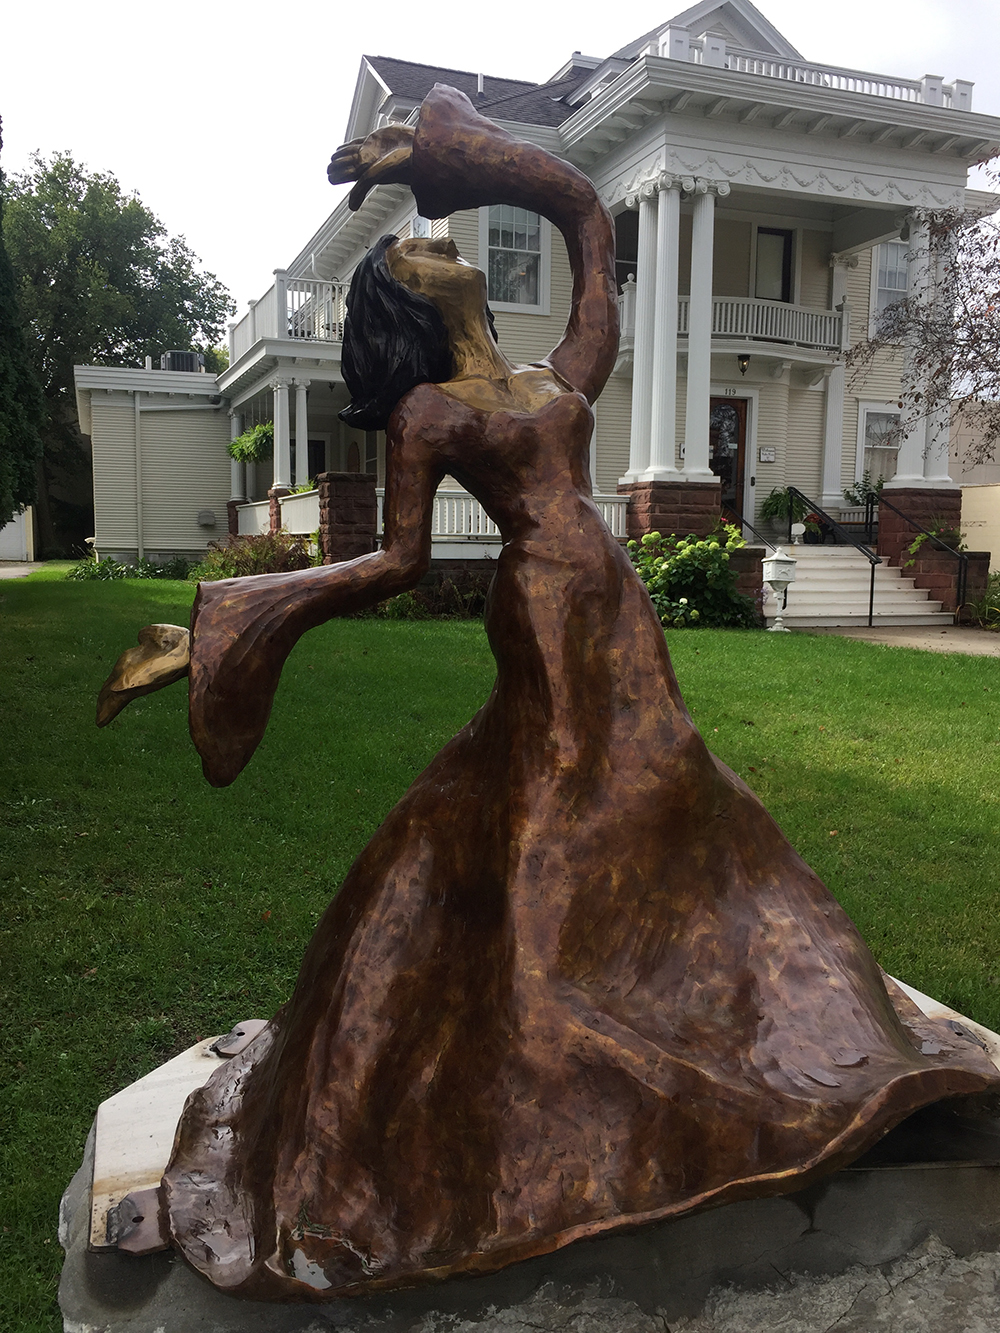 Bronze sculpture of woman dancing on the River City Sculptures on Parade in Mason City, Iowa